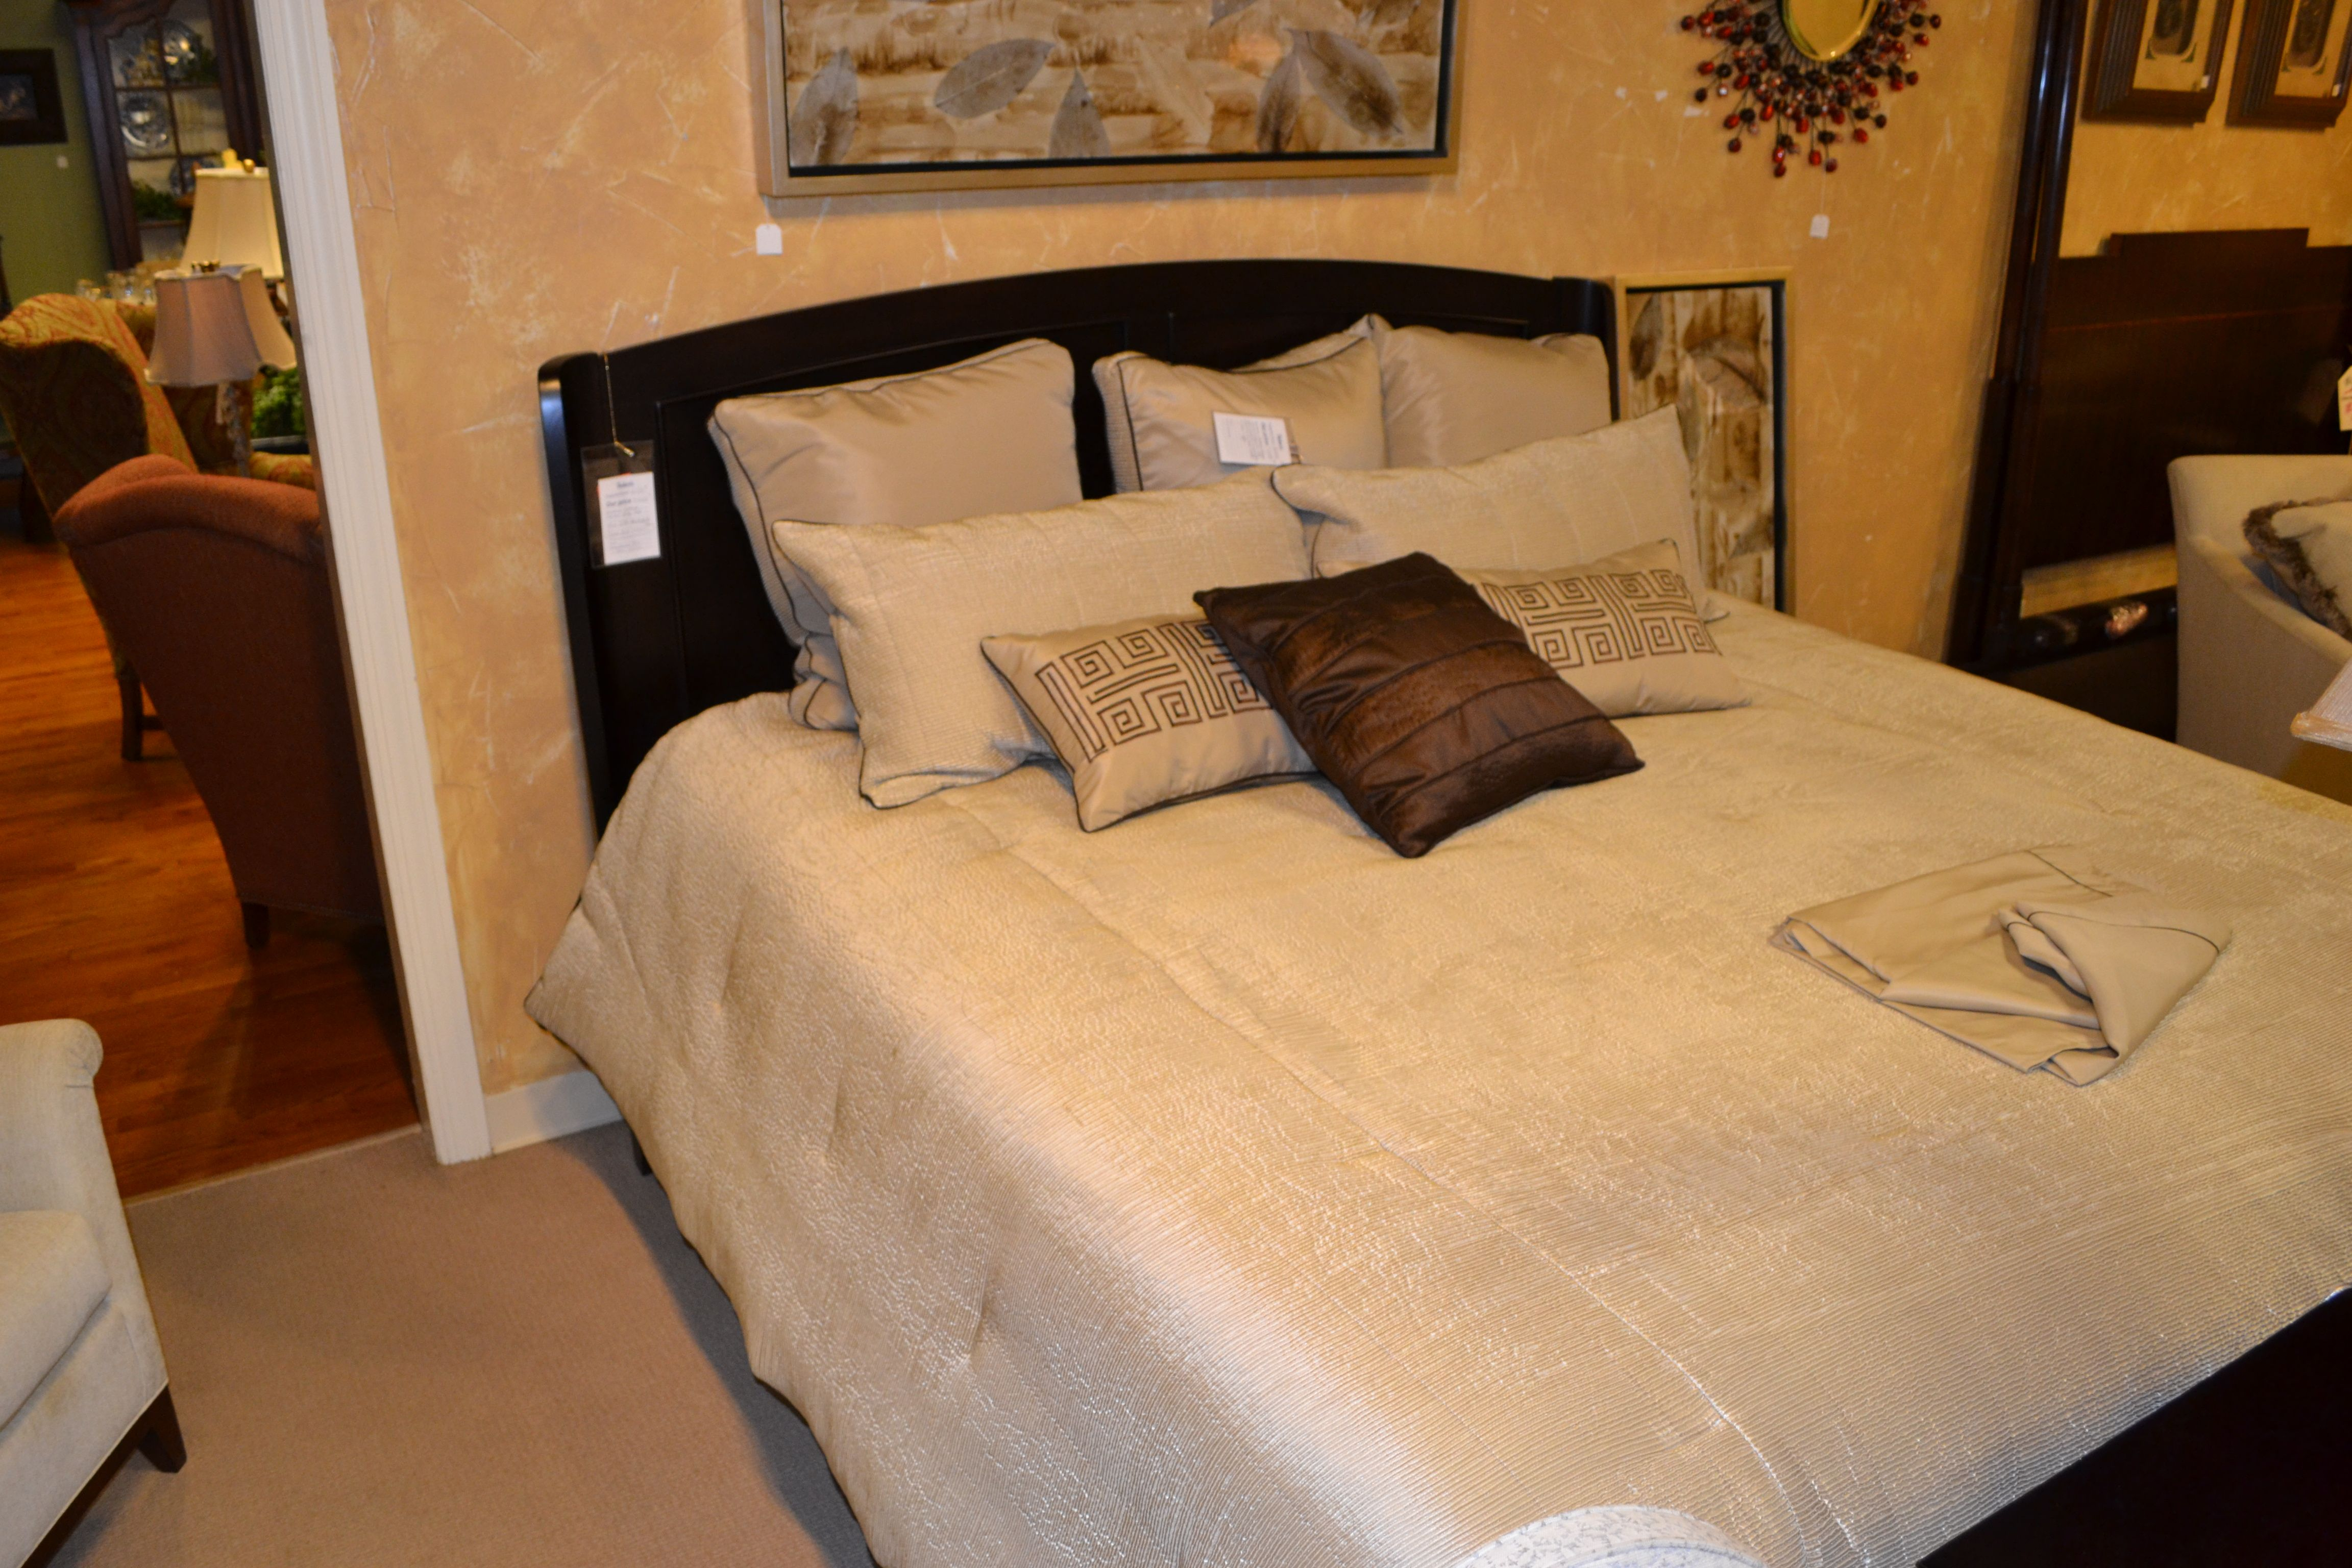 Cresent King And Queen Bed At Shubert Design And Furniture